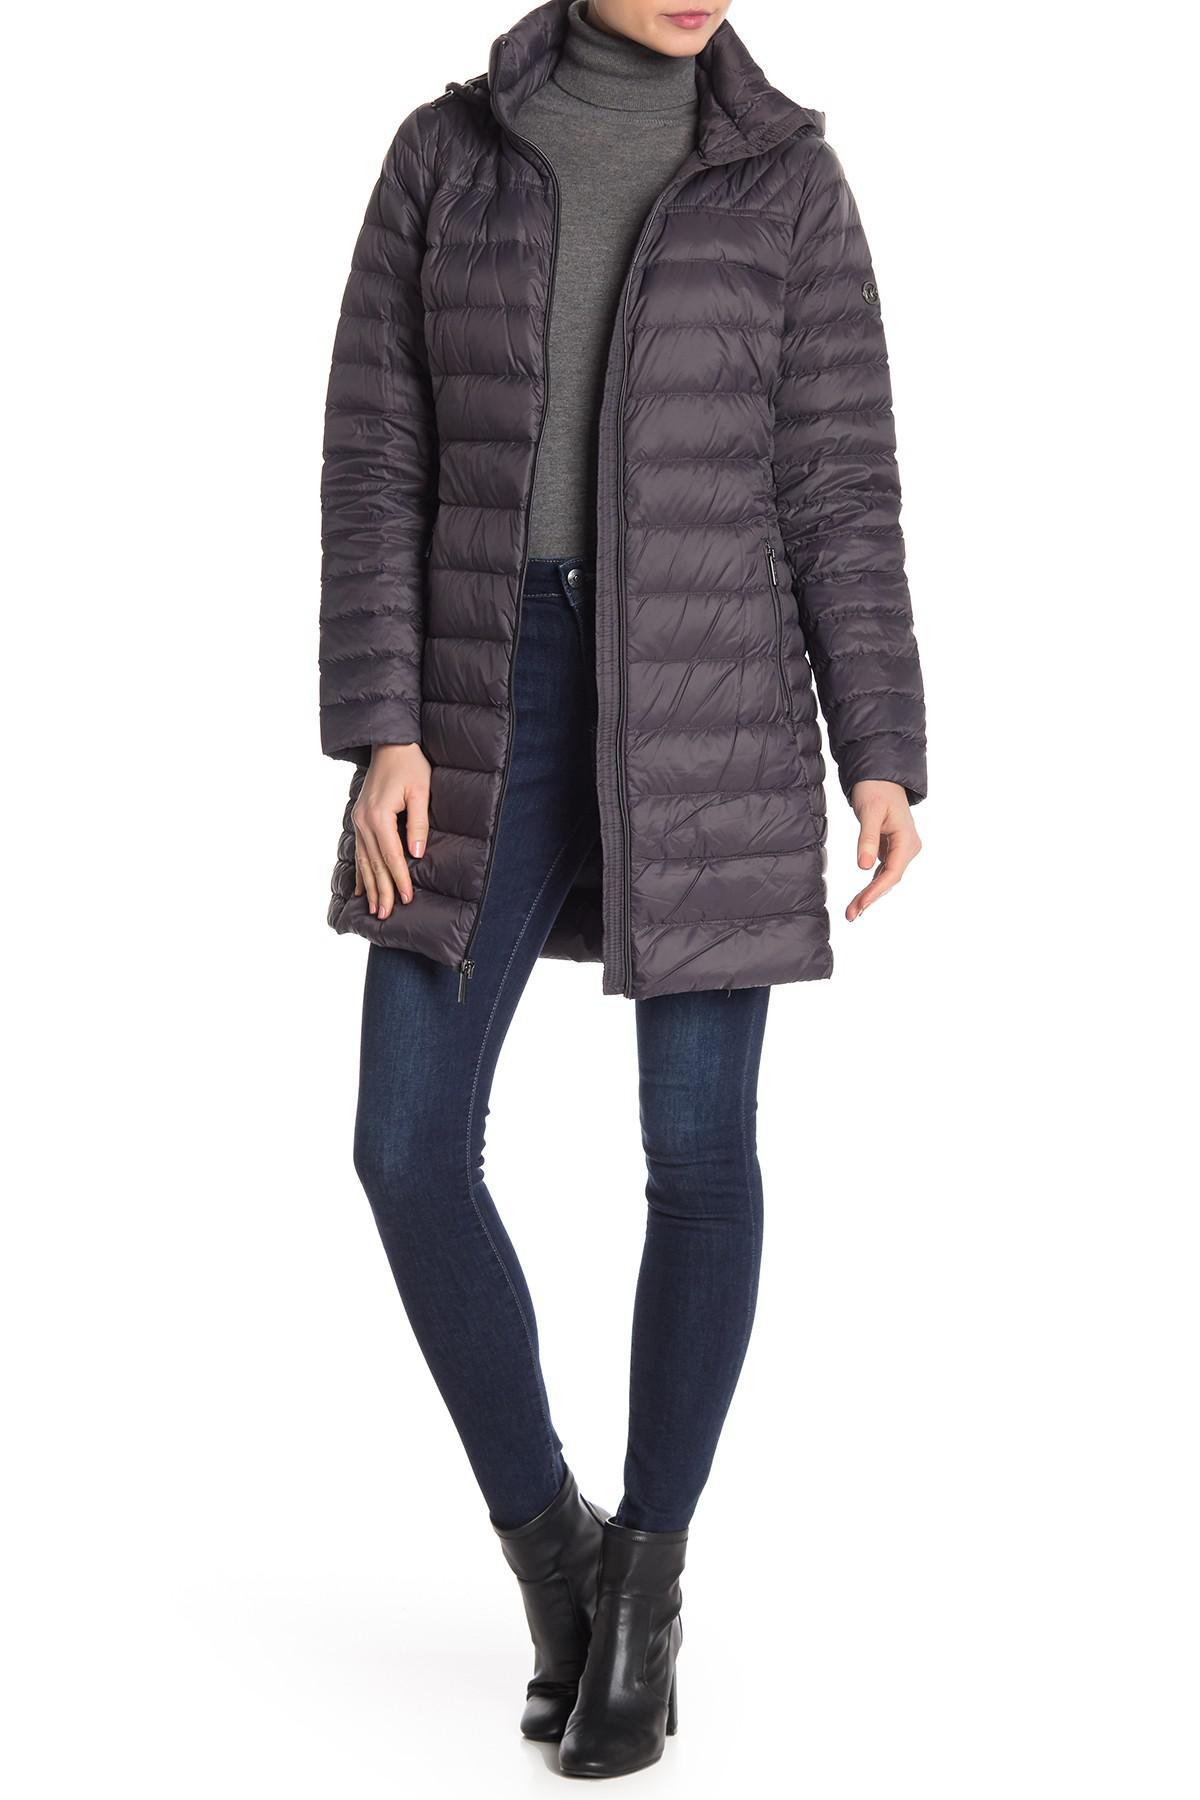 Lyst - MICHAEL Michael Kors Mizzy Zip Front Quilted Pack..